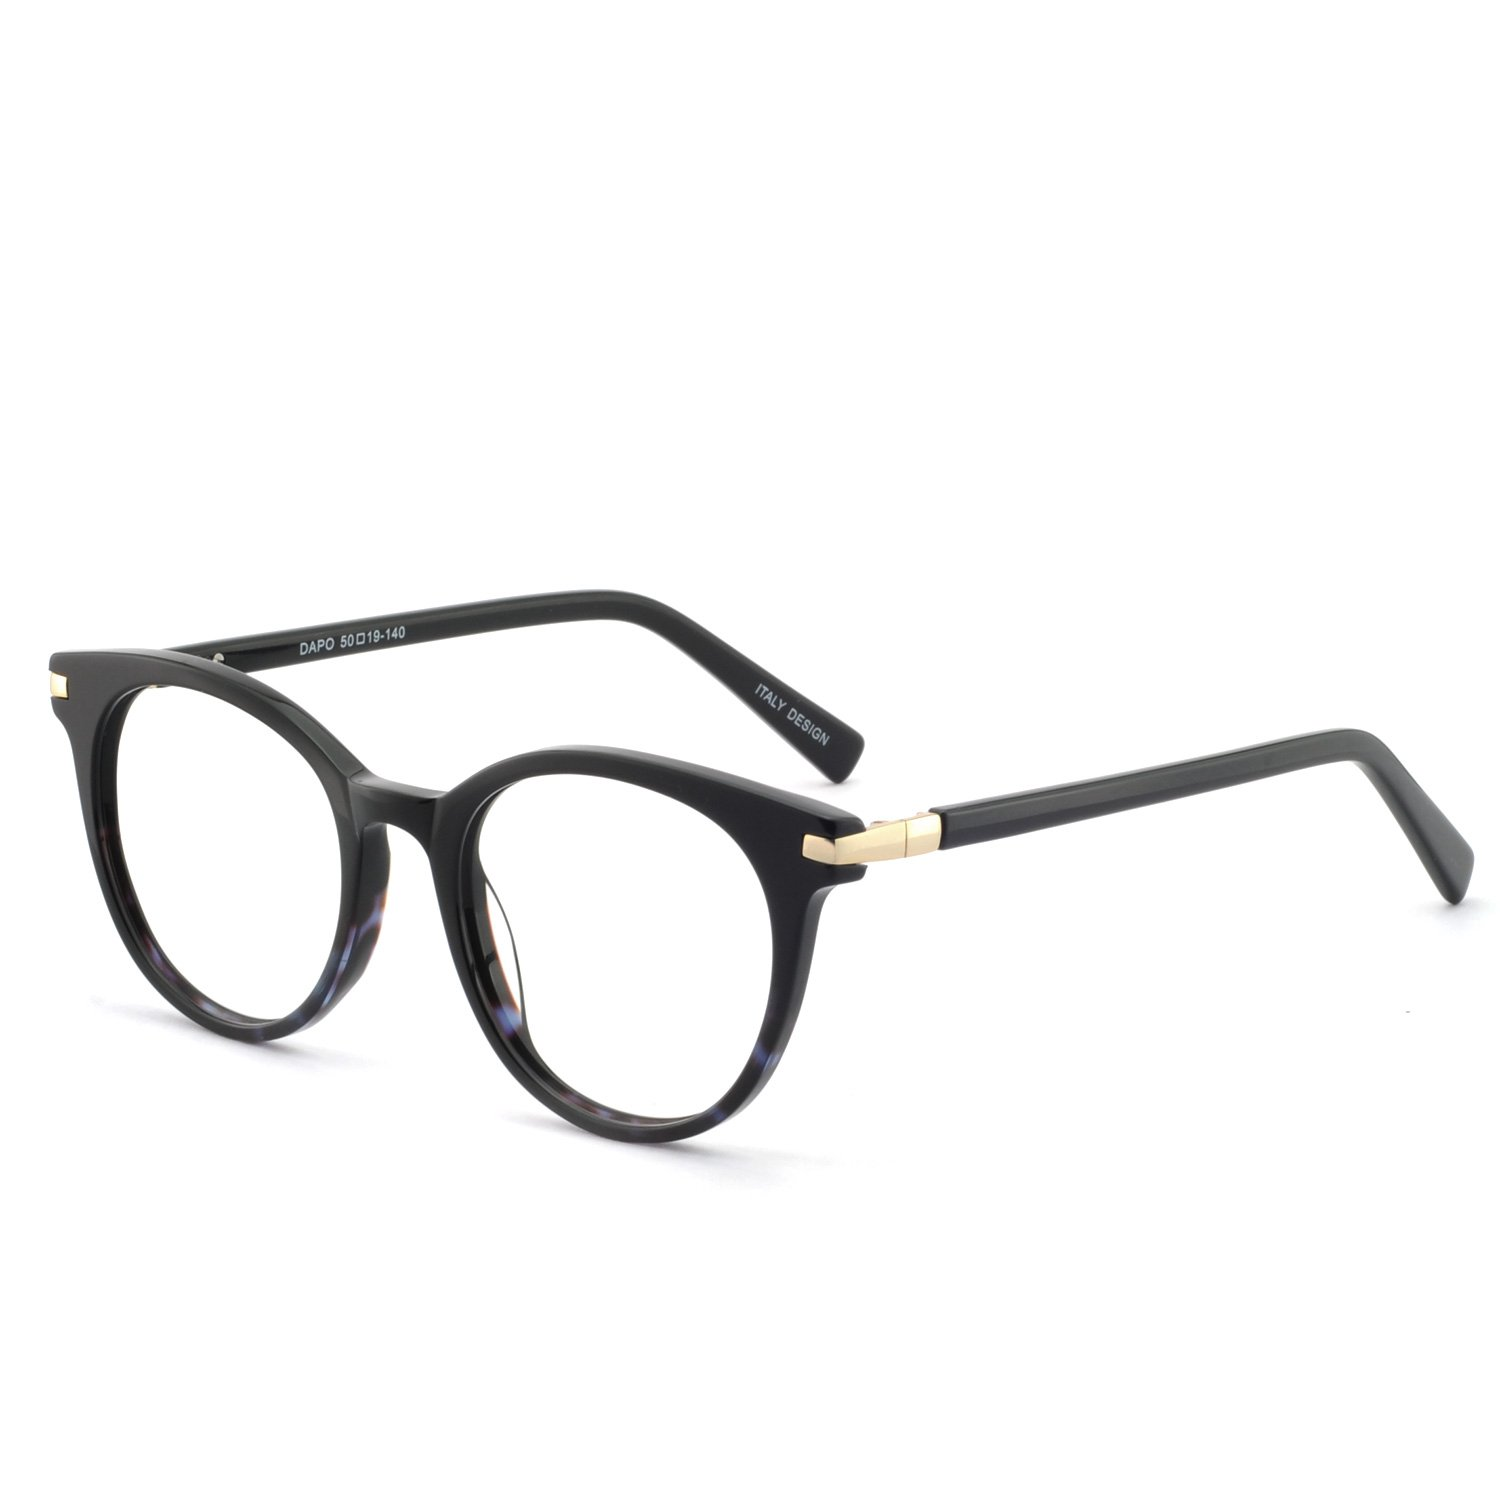 Black gold bluee OCCI bluee Light Blocking Glasses for Computer Use Anti Eyestrain UV Filter Lens Women Frame Eyeglasses